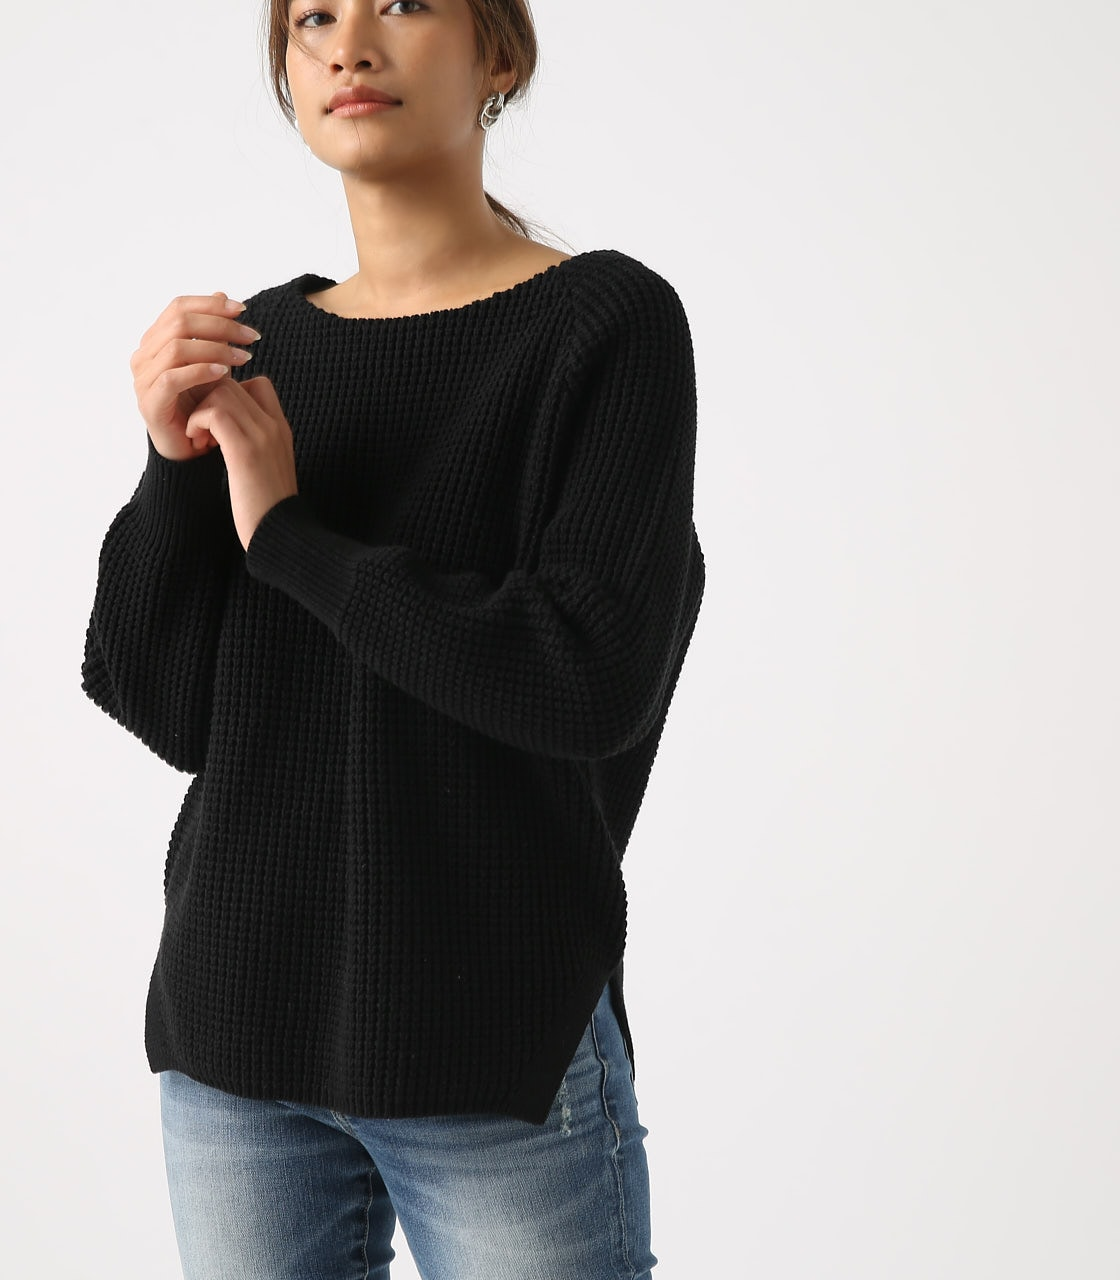 【AZUL BY MOUSSY】WAFFLE KNIT TUNIC 詳細画像 BLK 1